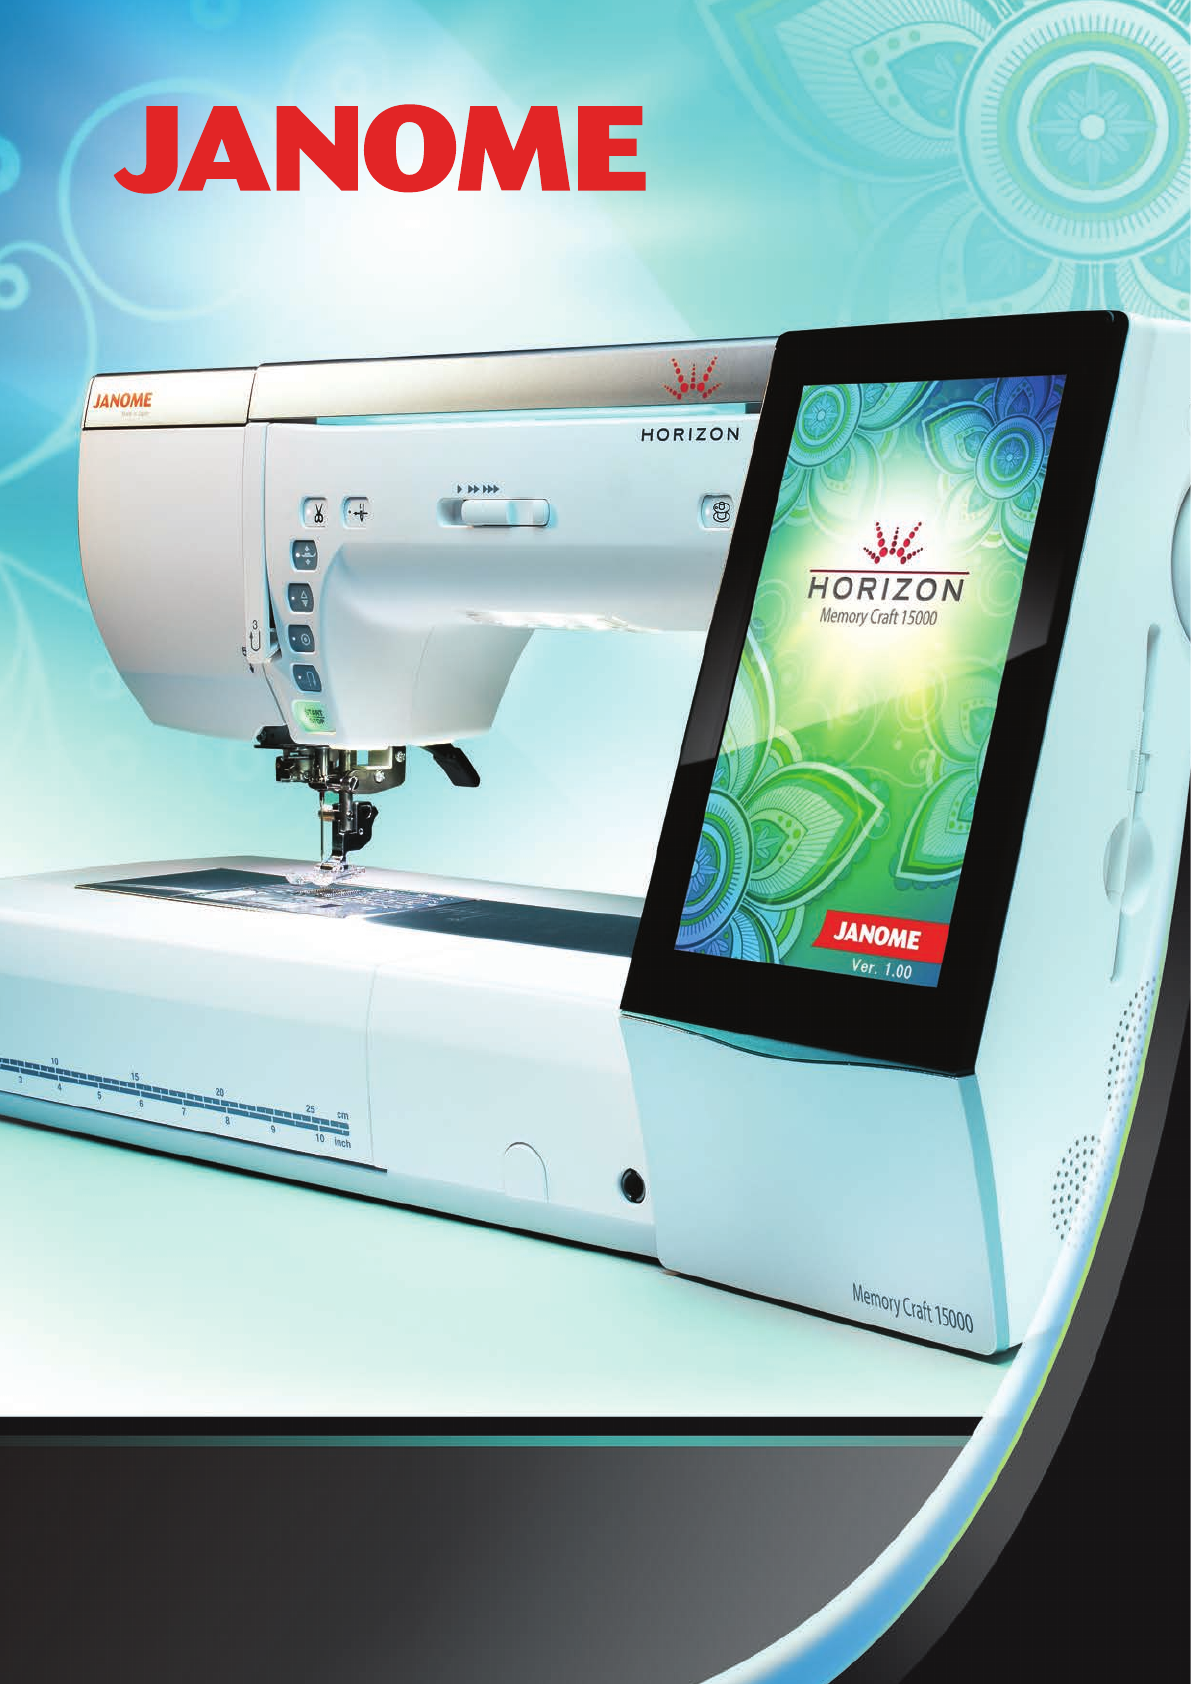 Janome sewing machine 15000 user guide for Janome memory craft 9000 problems